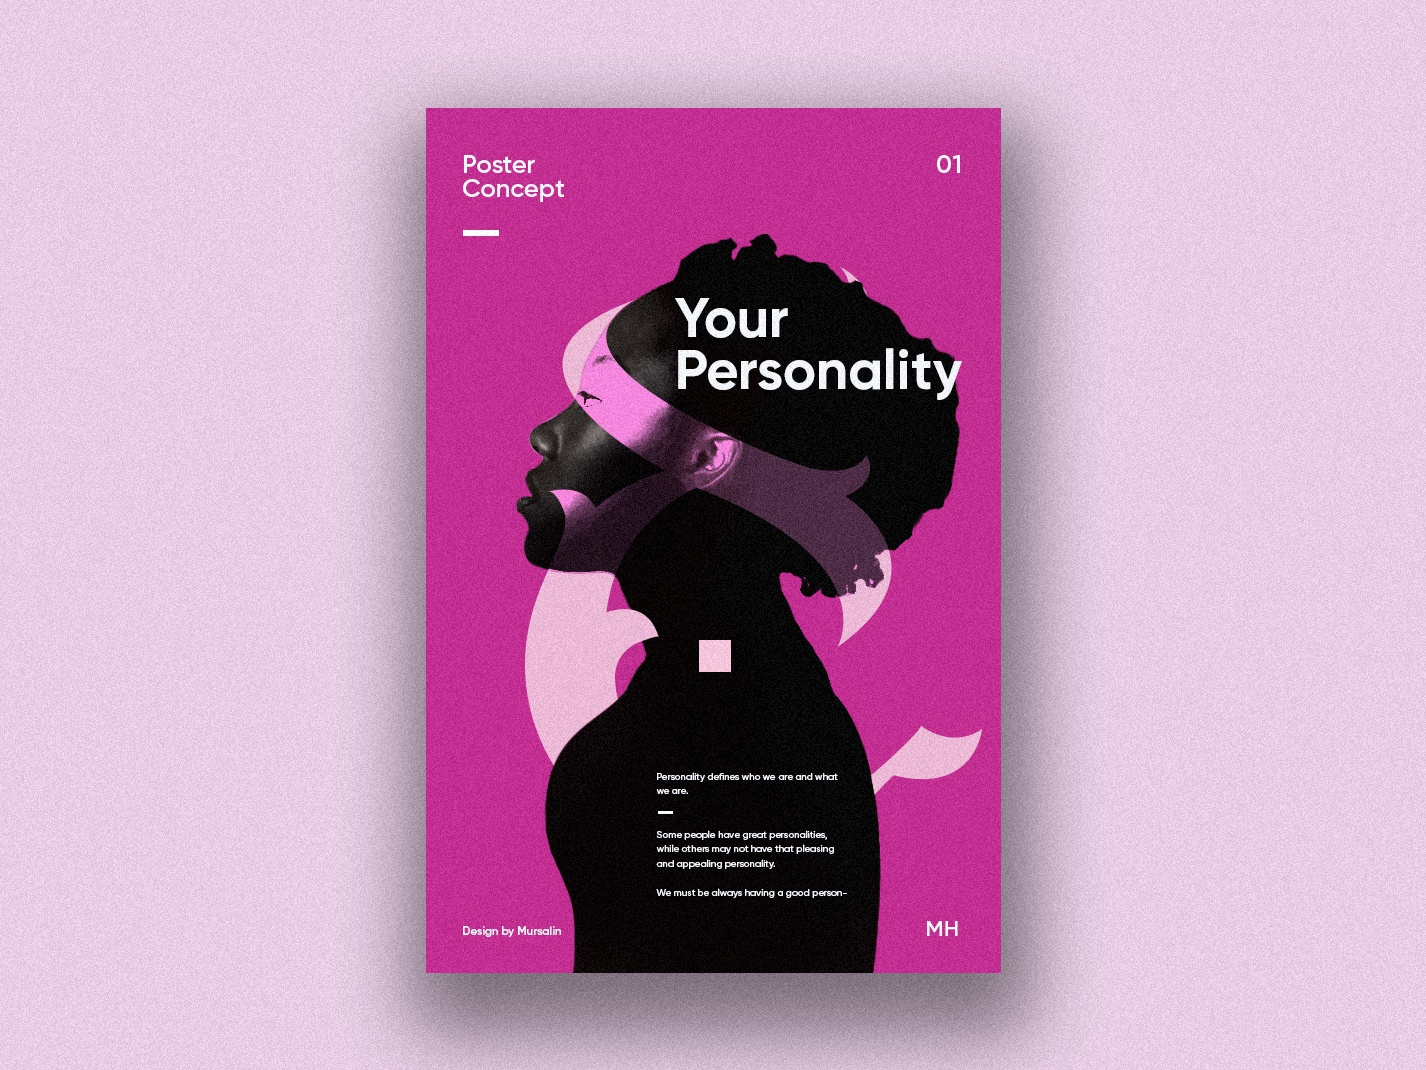 Your Personality Poster Design business logo creative logotype graphic identity modern logo geometric typography vector fashion design high style woman face illustrations webdesign poster design creative logo design branding logodesign logo